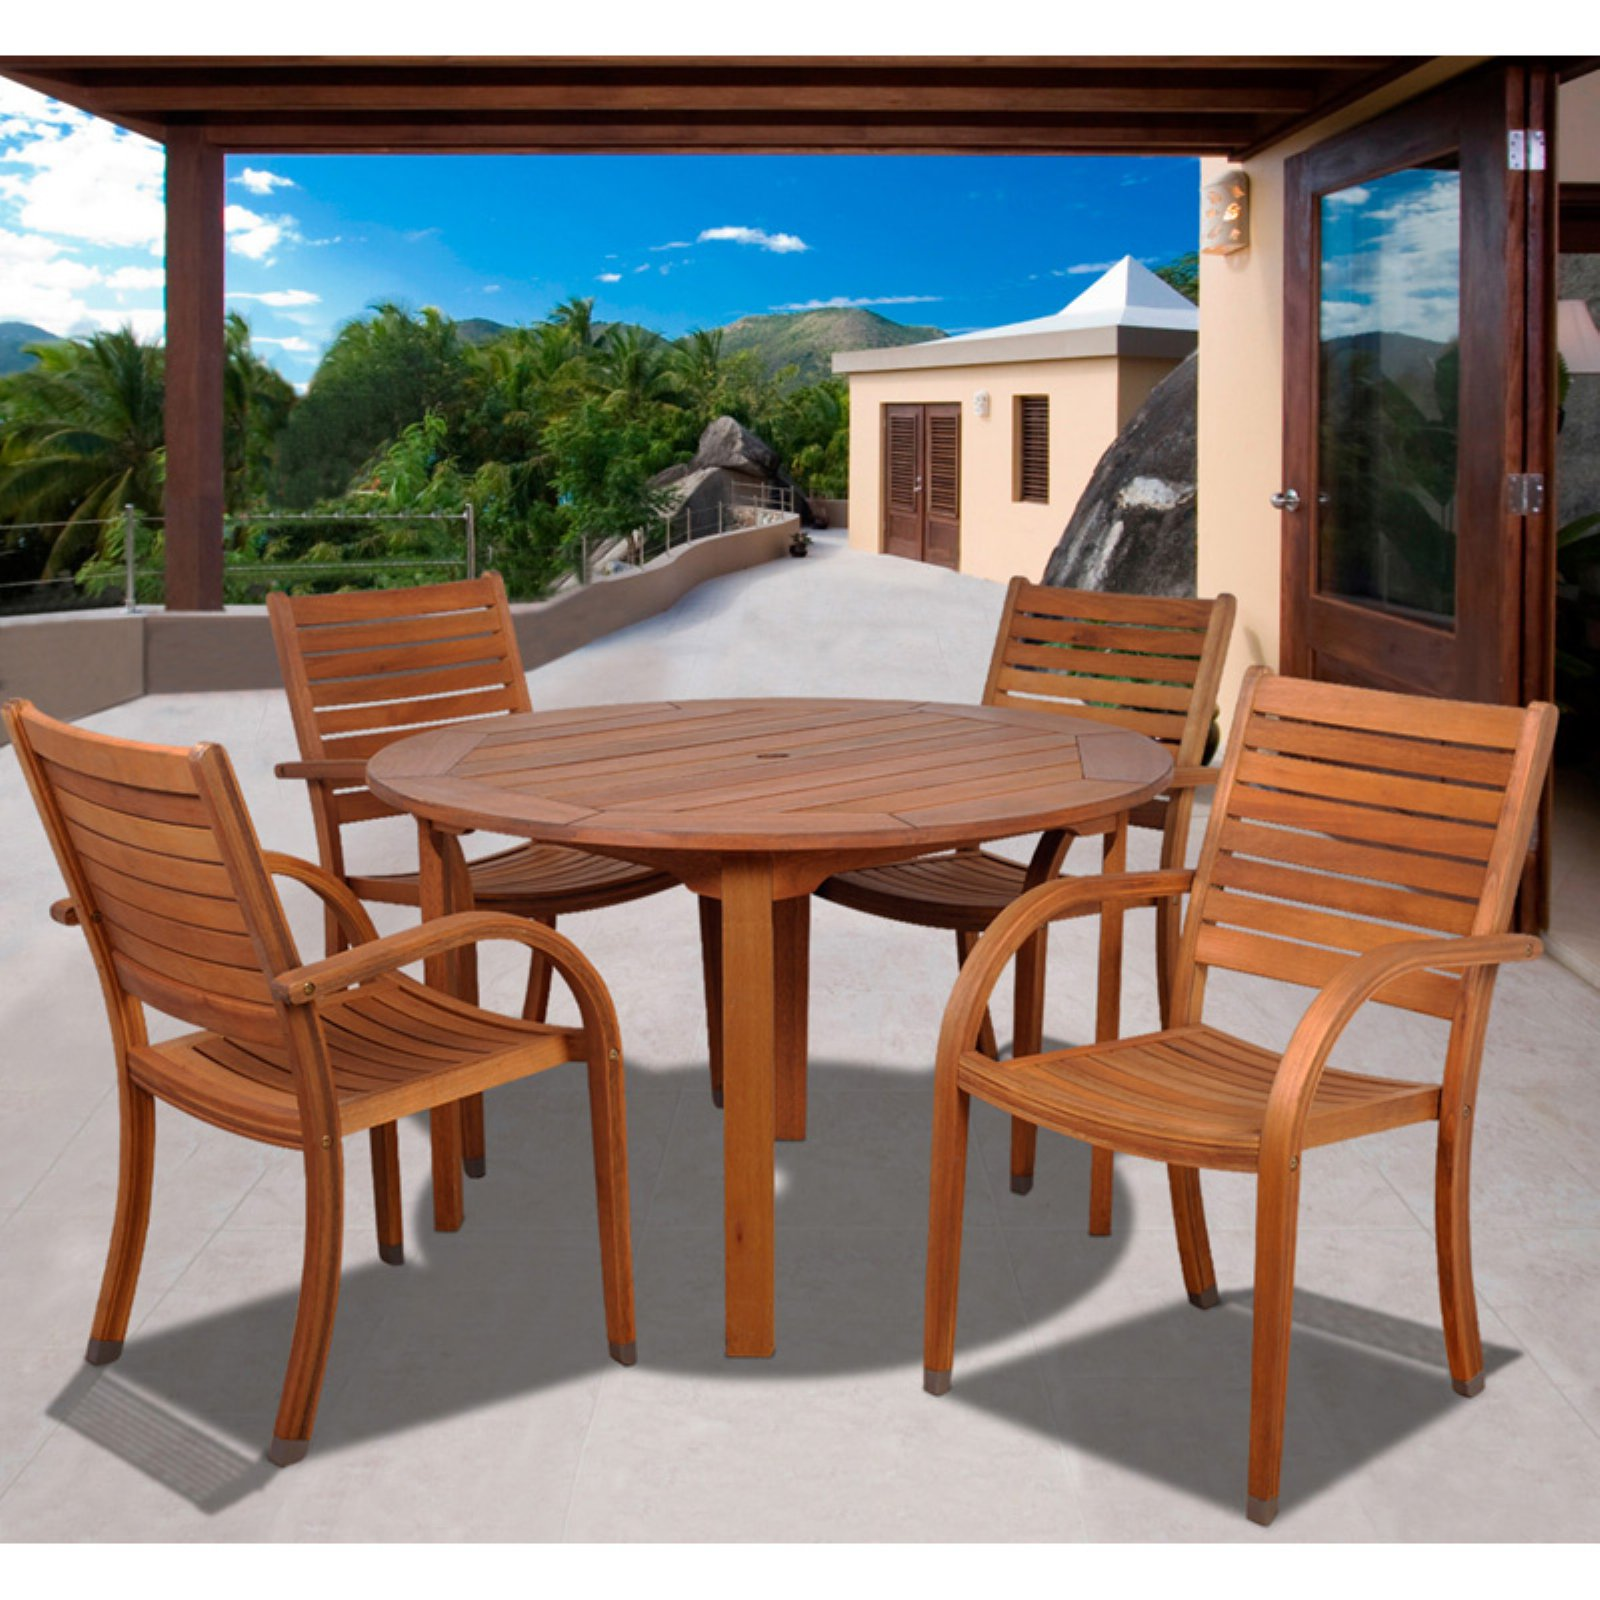 Amazonia Kentucky 5 Piece Round Eucalyptus Patio Dining Set